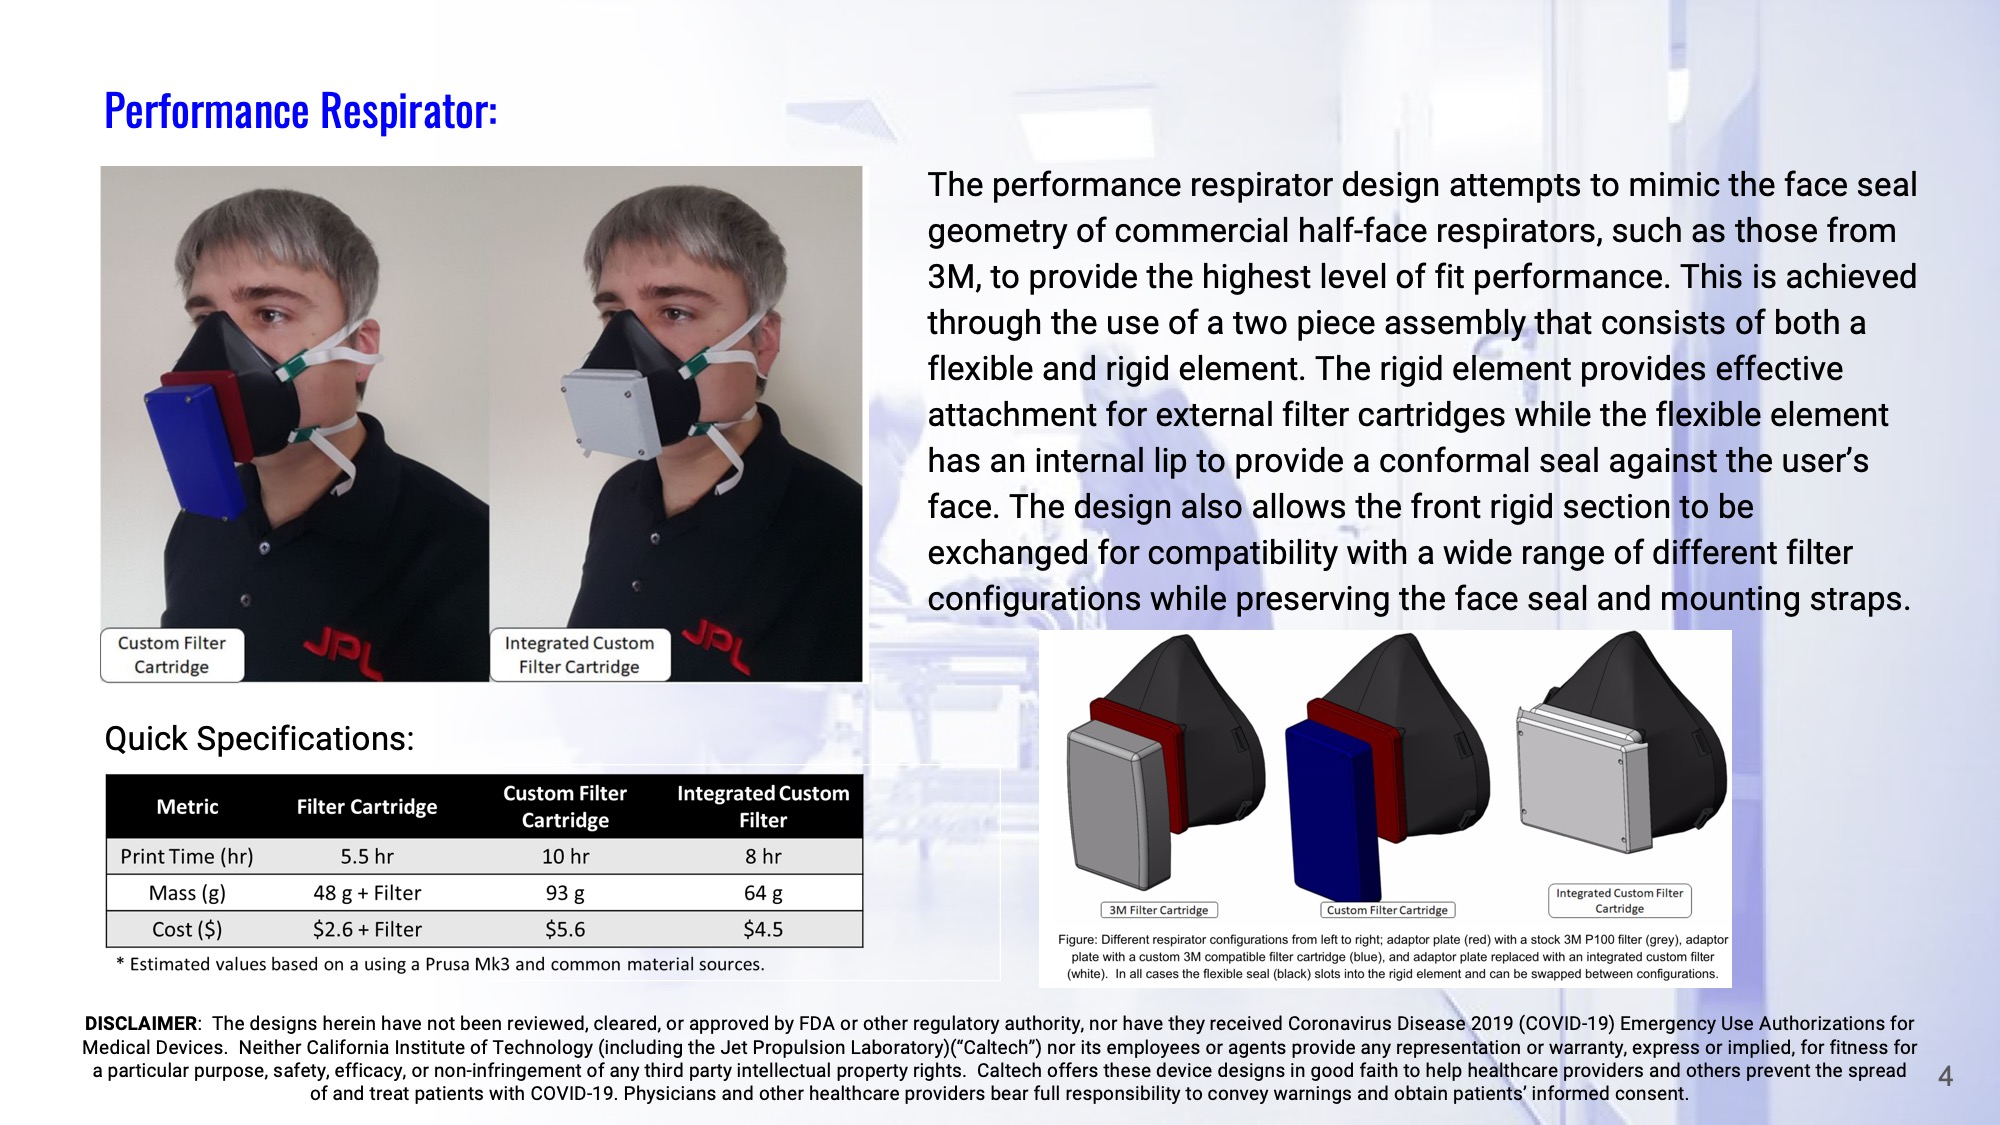 Slide 4: Performance Respirator: The performance respirator design attempts to mimic the face seal geometry of commercial half-face respirators, such as those from 3M, to provide the highest level of fit performance. This is achieved through the use of a two piece assembly that consists of both a flexible and rigid element. The rigid element provides effective attachment for external filter cartridges while the flexible element has an internal lip to provide a conformal seal against the user's face. The design also allows the front rigid section to be exchanged for compatibility with a wide range of different filter configurations while preserving the face seal and mounting straps.